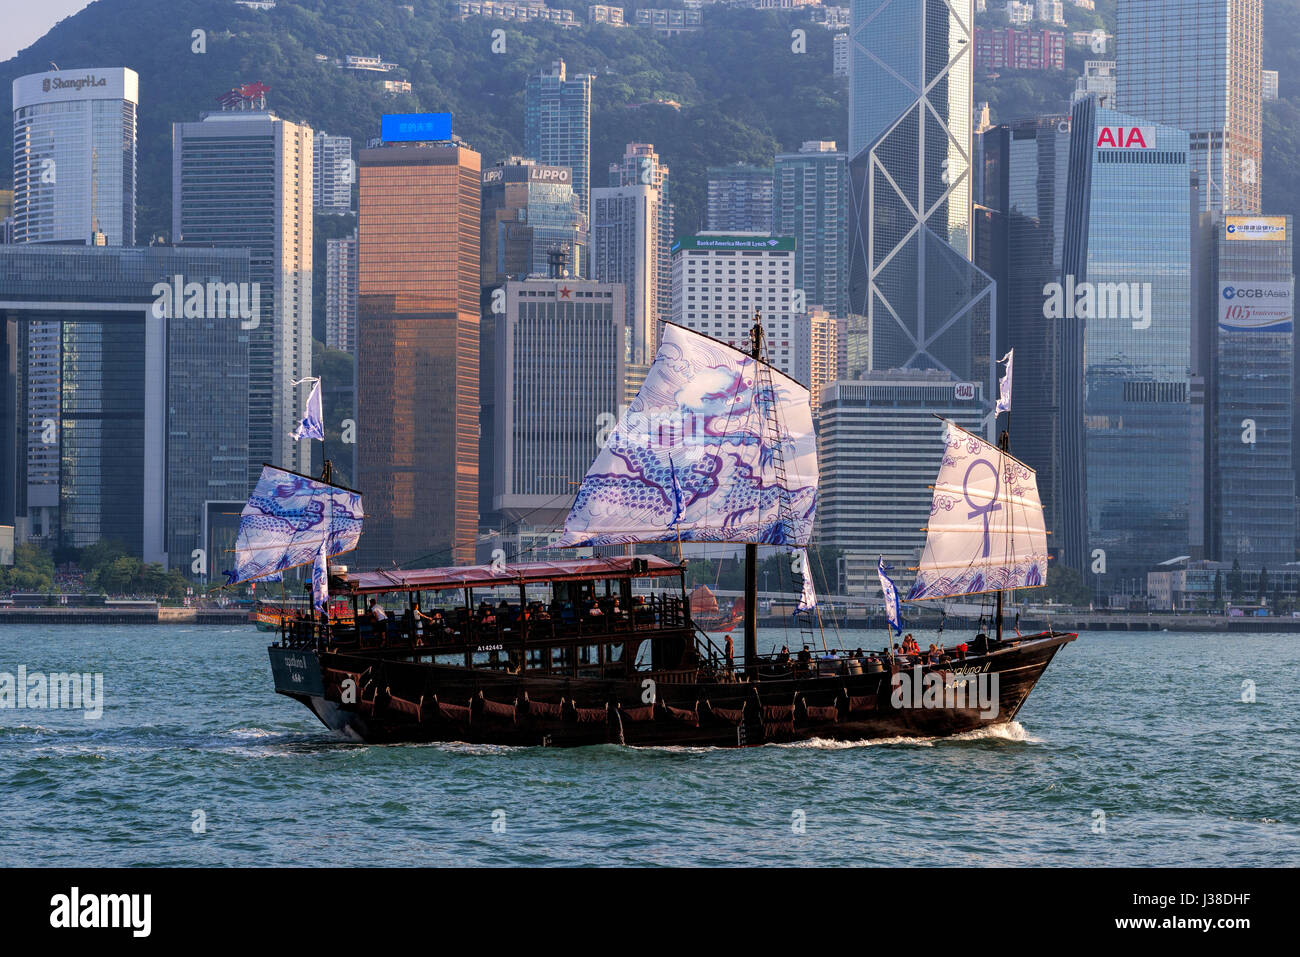 The newly designed dragon traditional Chinese junk, Victoria harbor, Hong Kong, China. - Stock Image